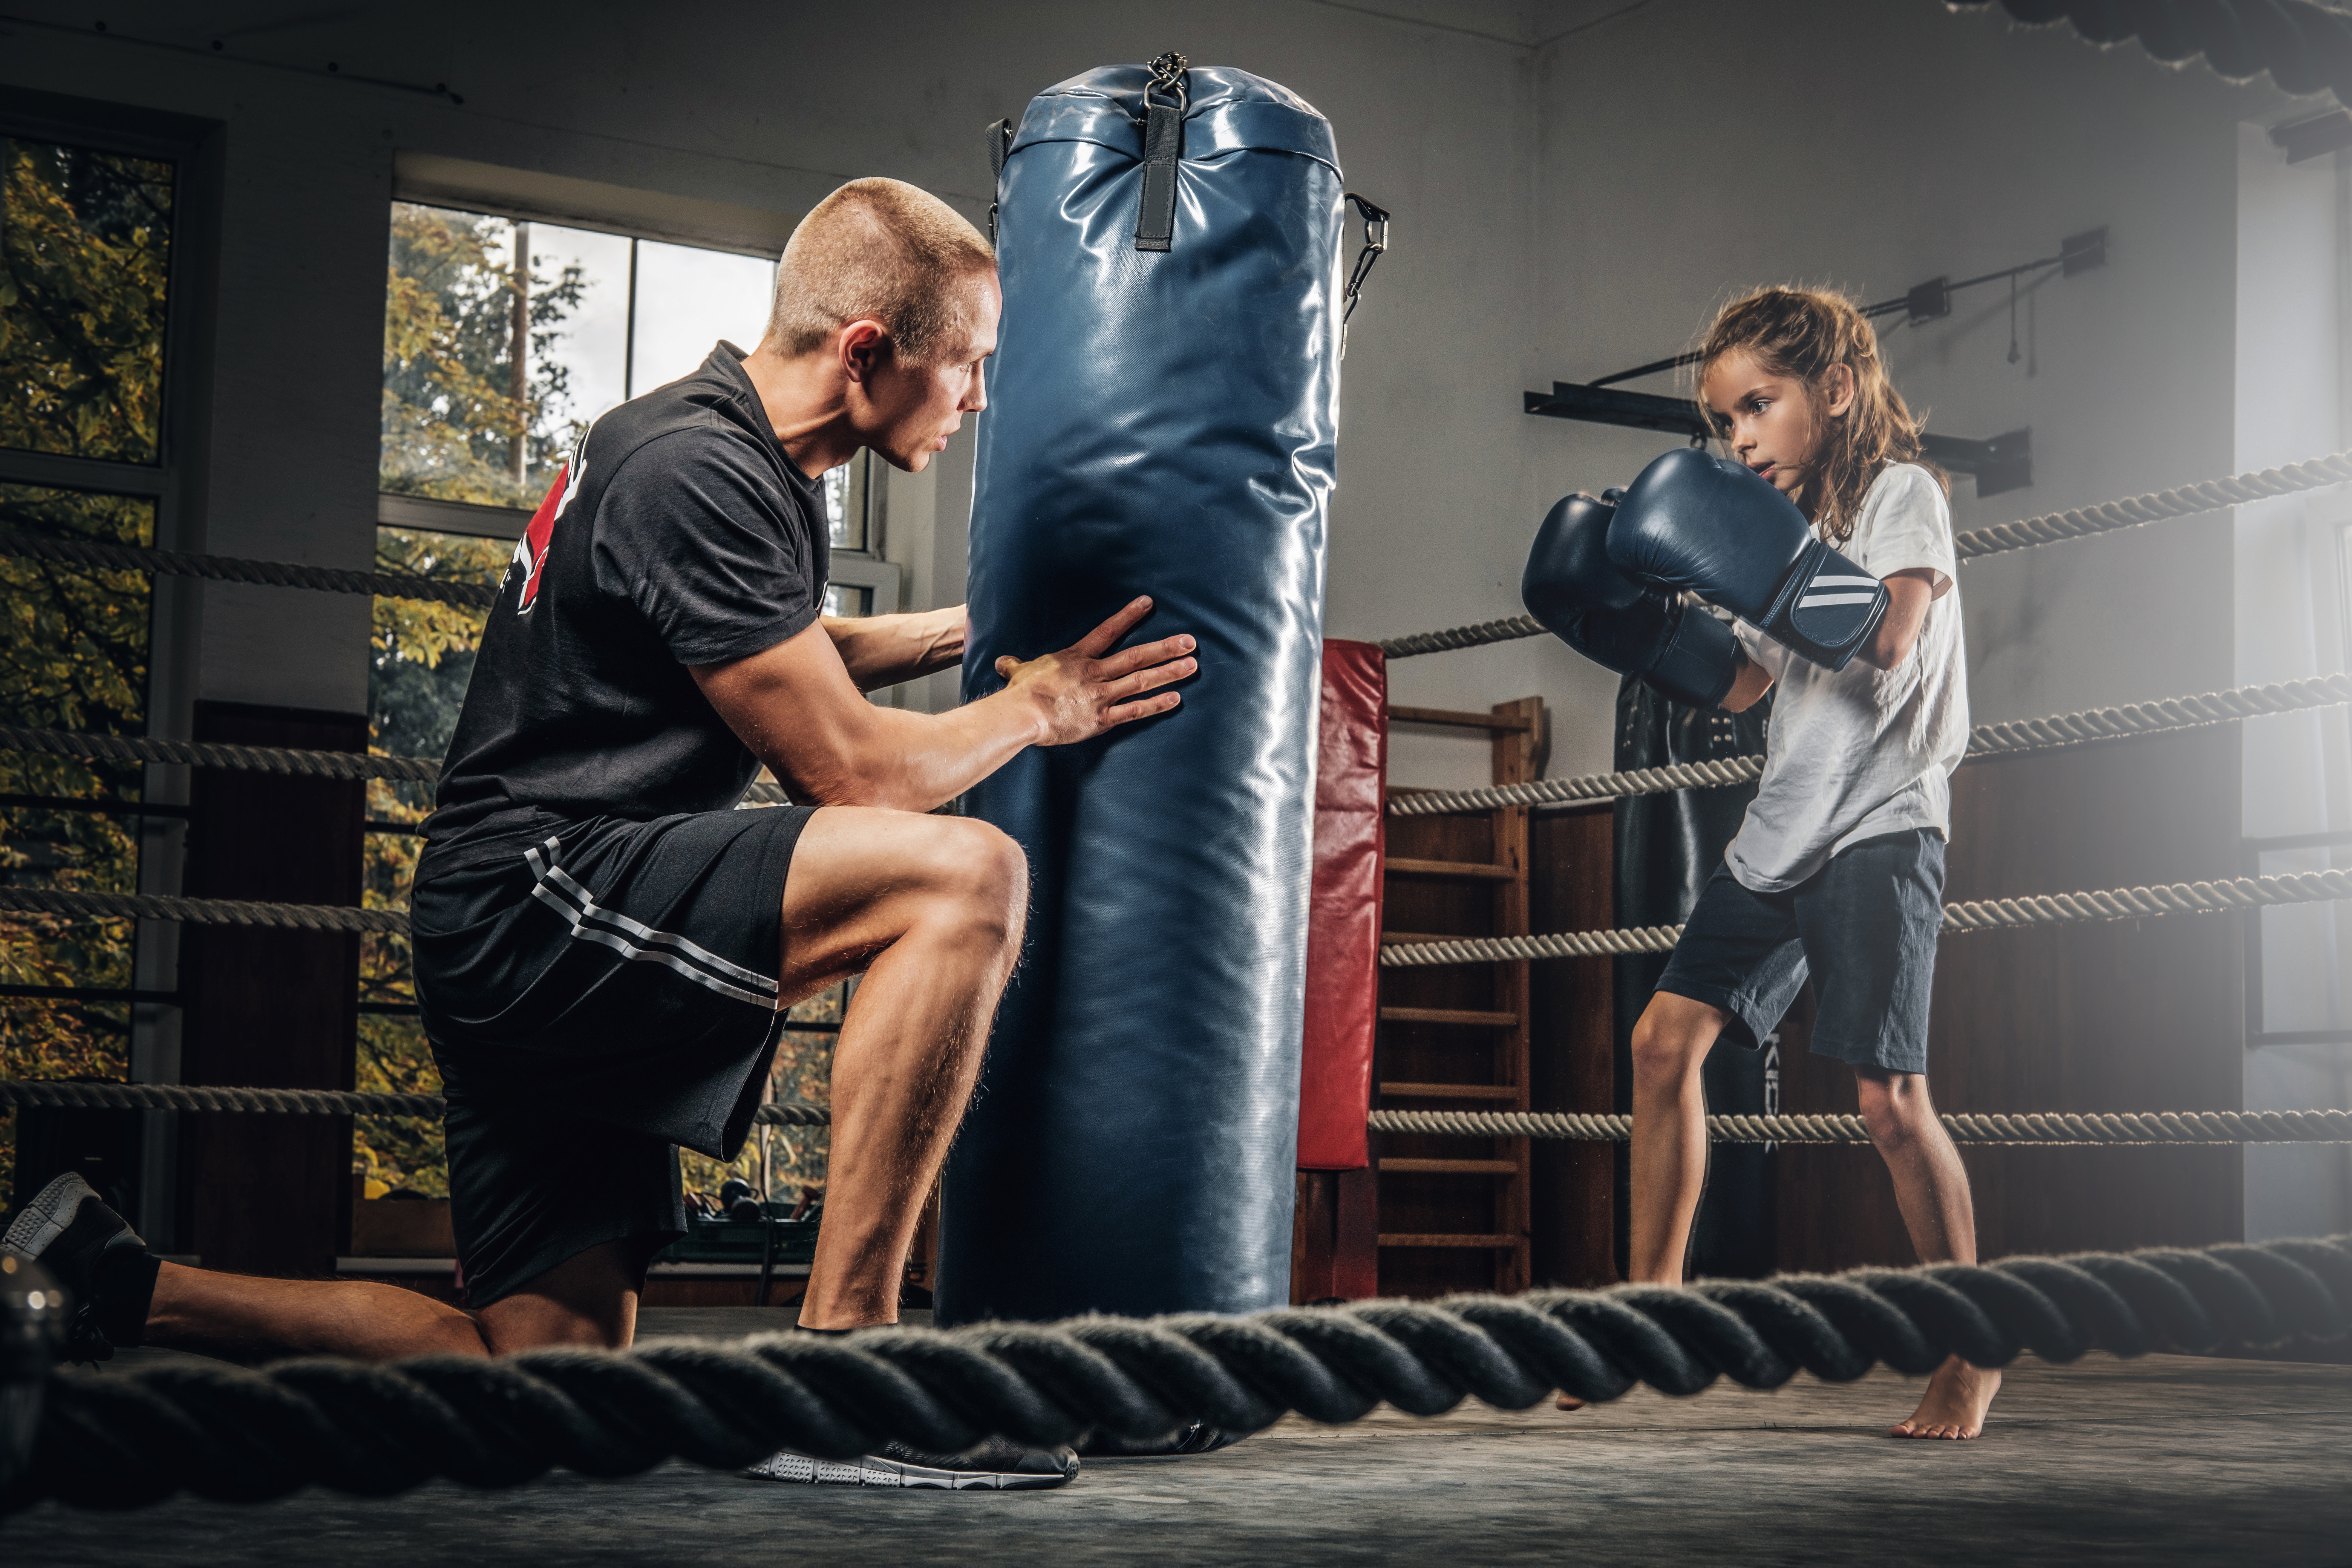 Step into the ring and feel the benefits of youth boxing